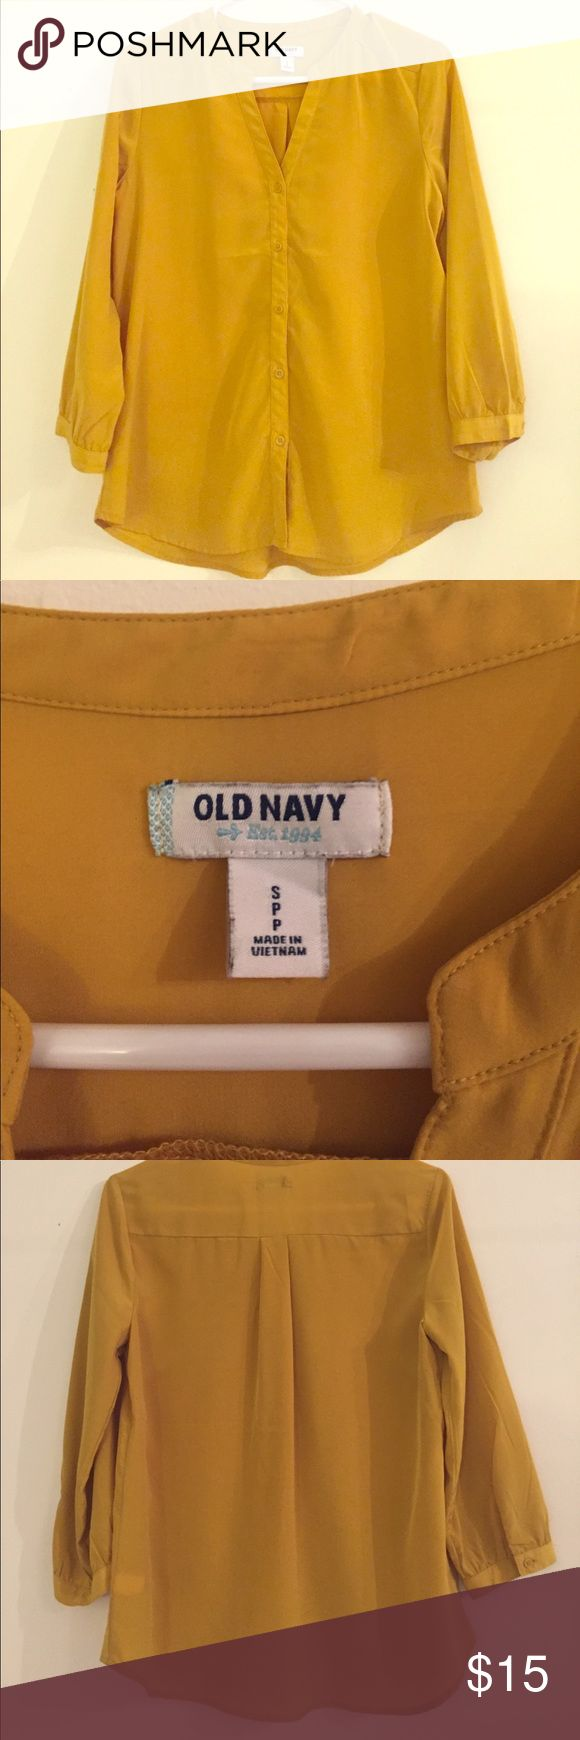 Old Navu blouse (size S) Great staple piece! 3/4 sleeve Old Navy blouse. Color Mustard or Chartreuse. Old Navy Tops Blouses